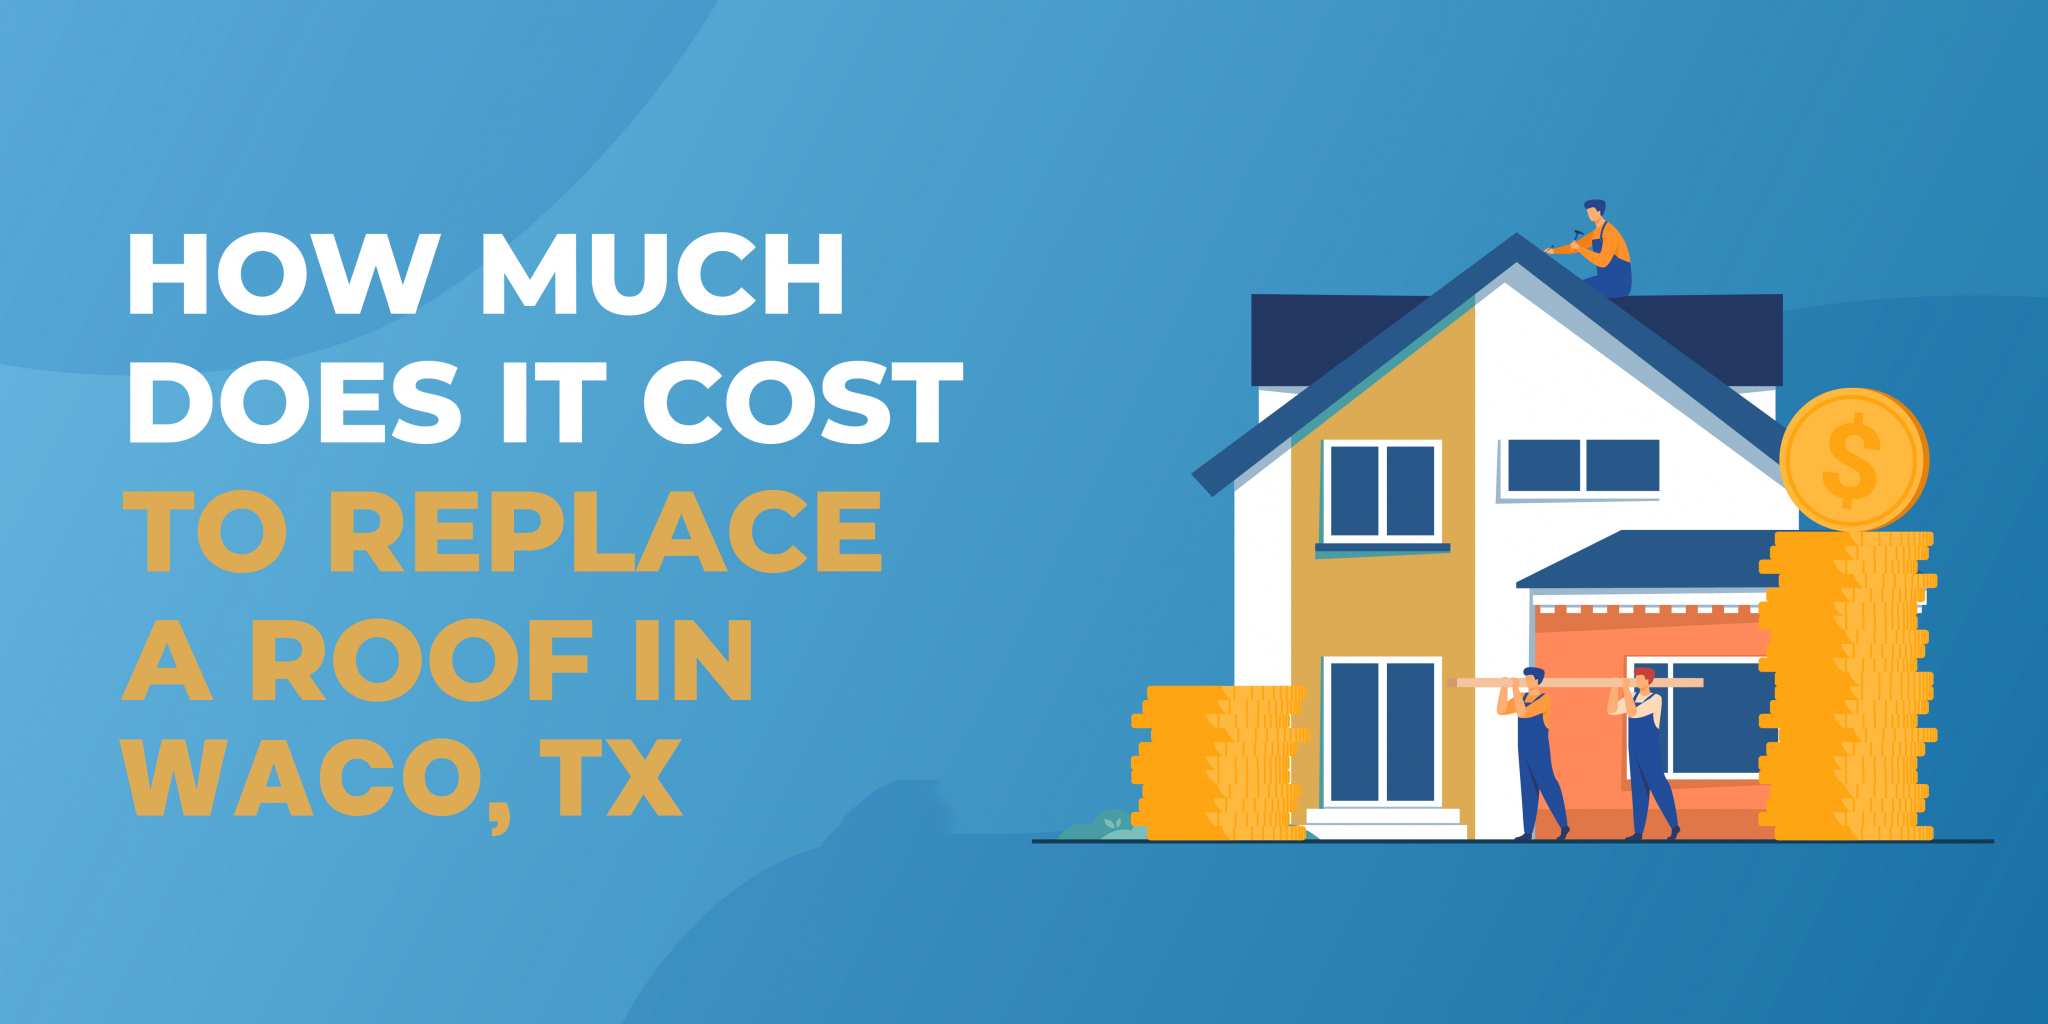 How Much Does It Cost to Replace a Roof in Waco?